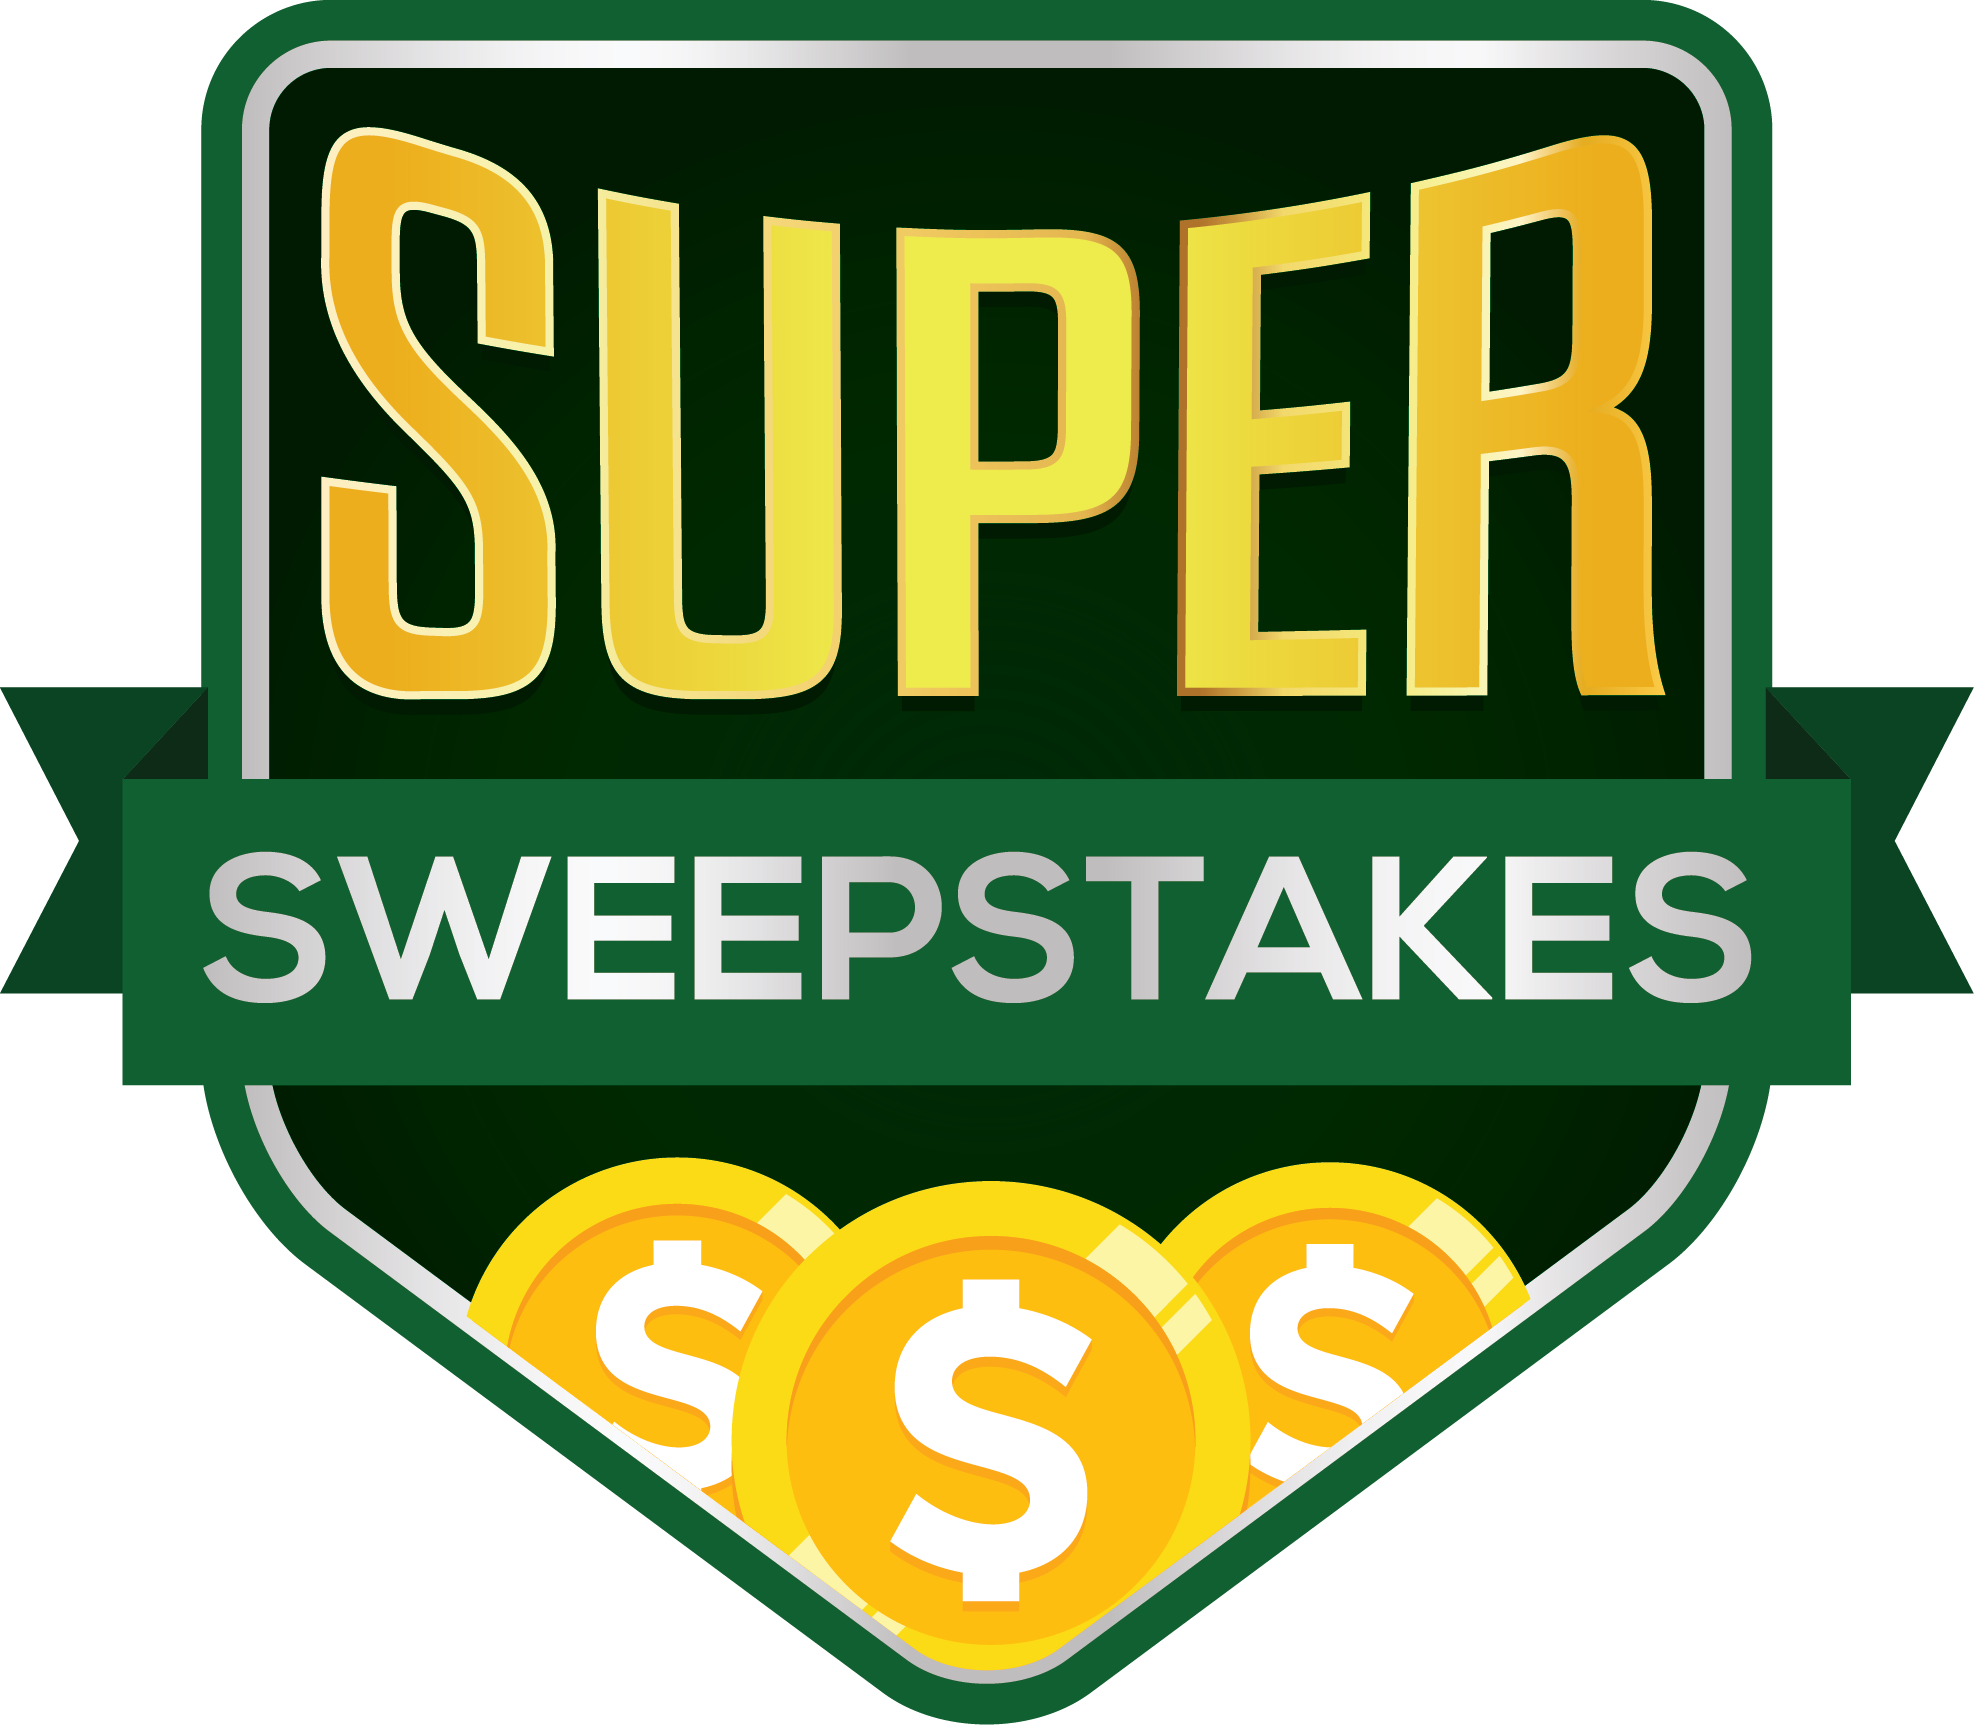 Win 50k Dollars Now Super Sweepstakes Everyday Sweepstakes Win For Life Romantic Quotes For Her